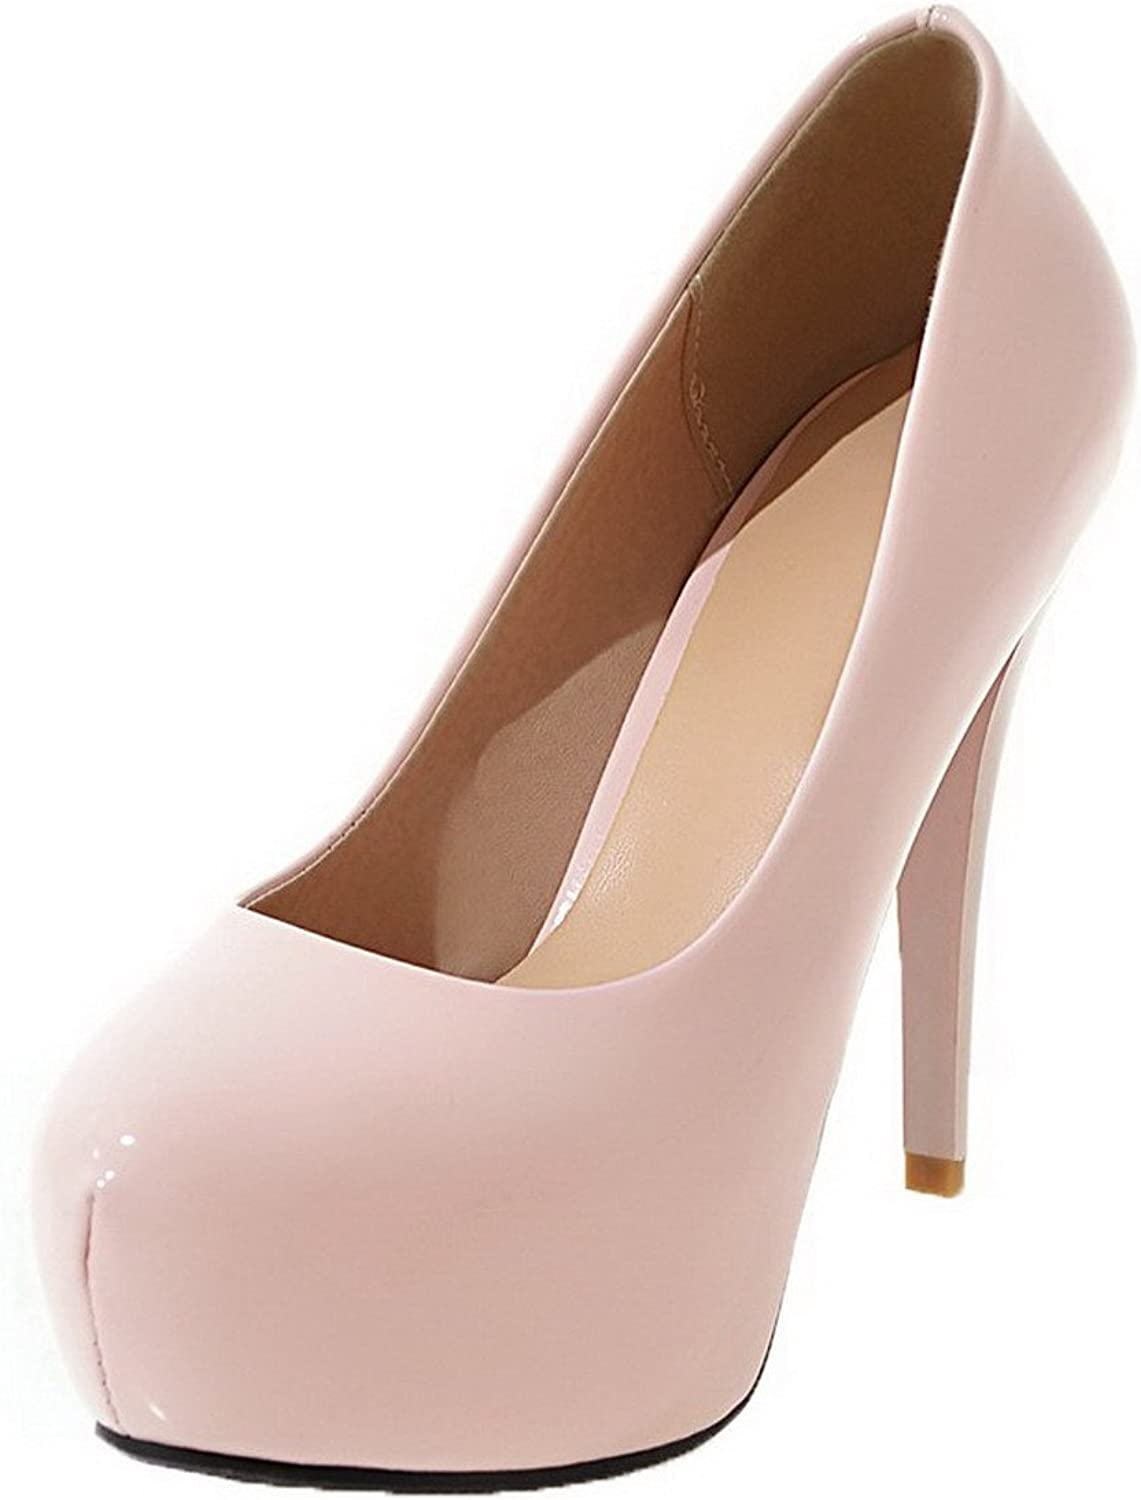 AmoonyFashion Women's Solid PU High-Heels Round-Toe Pull-On Pumps